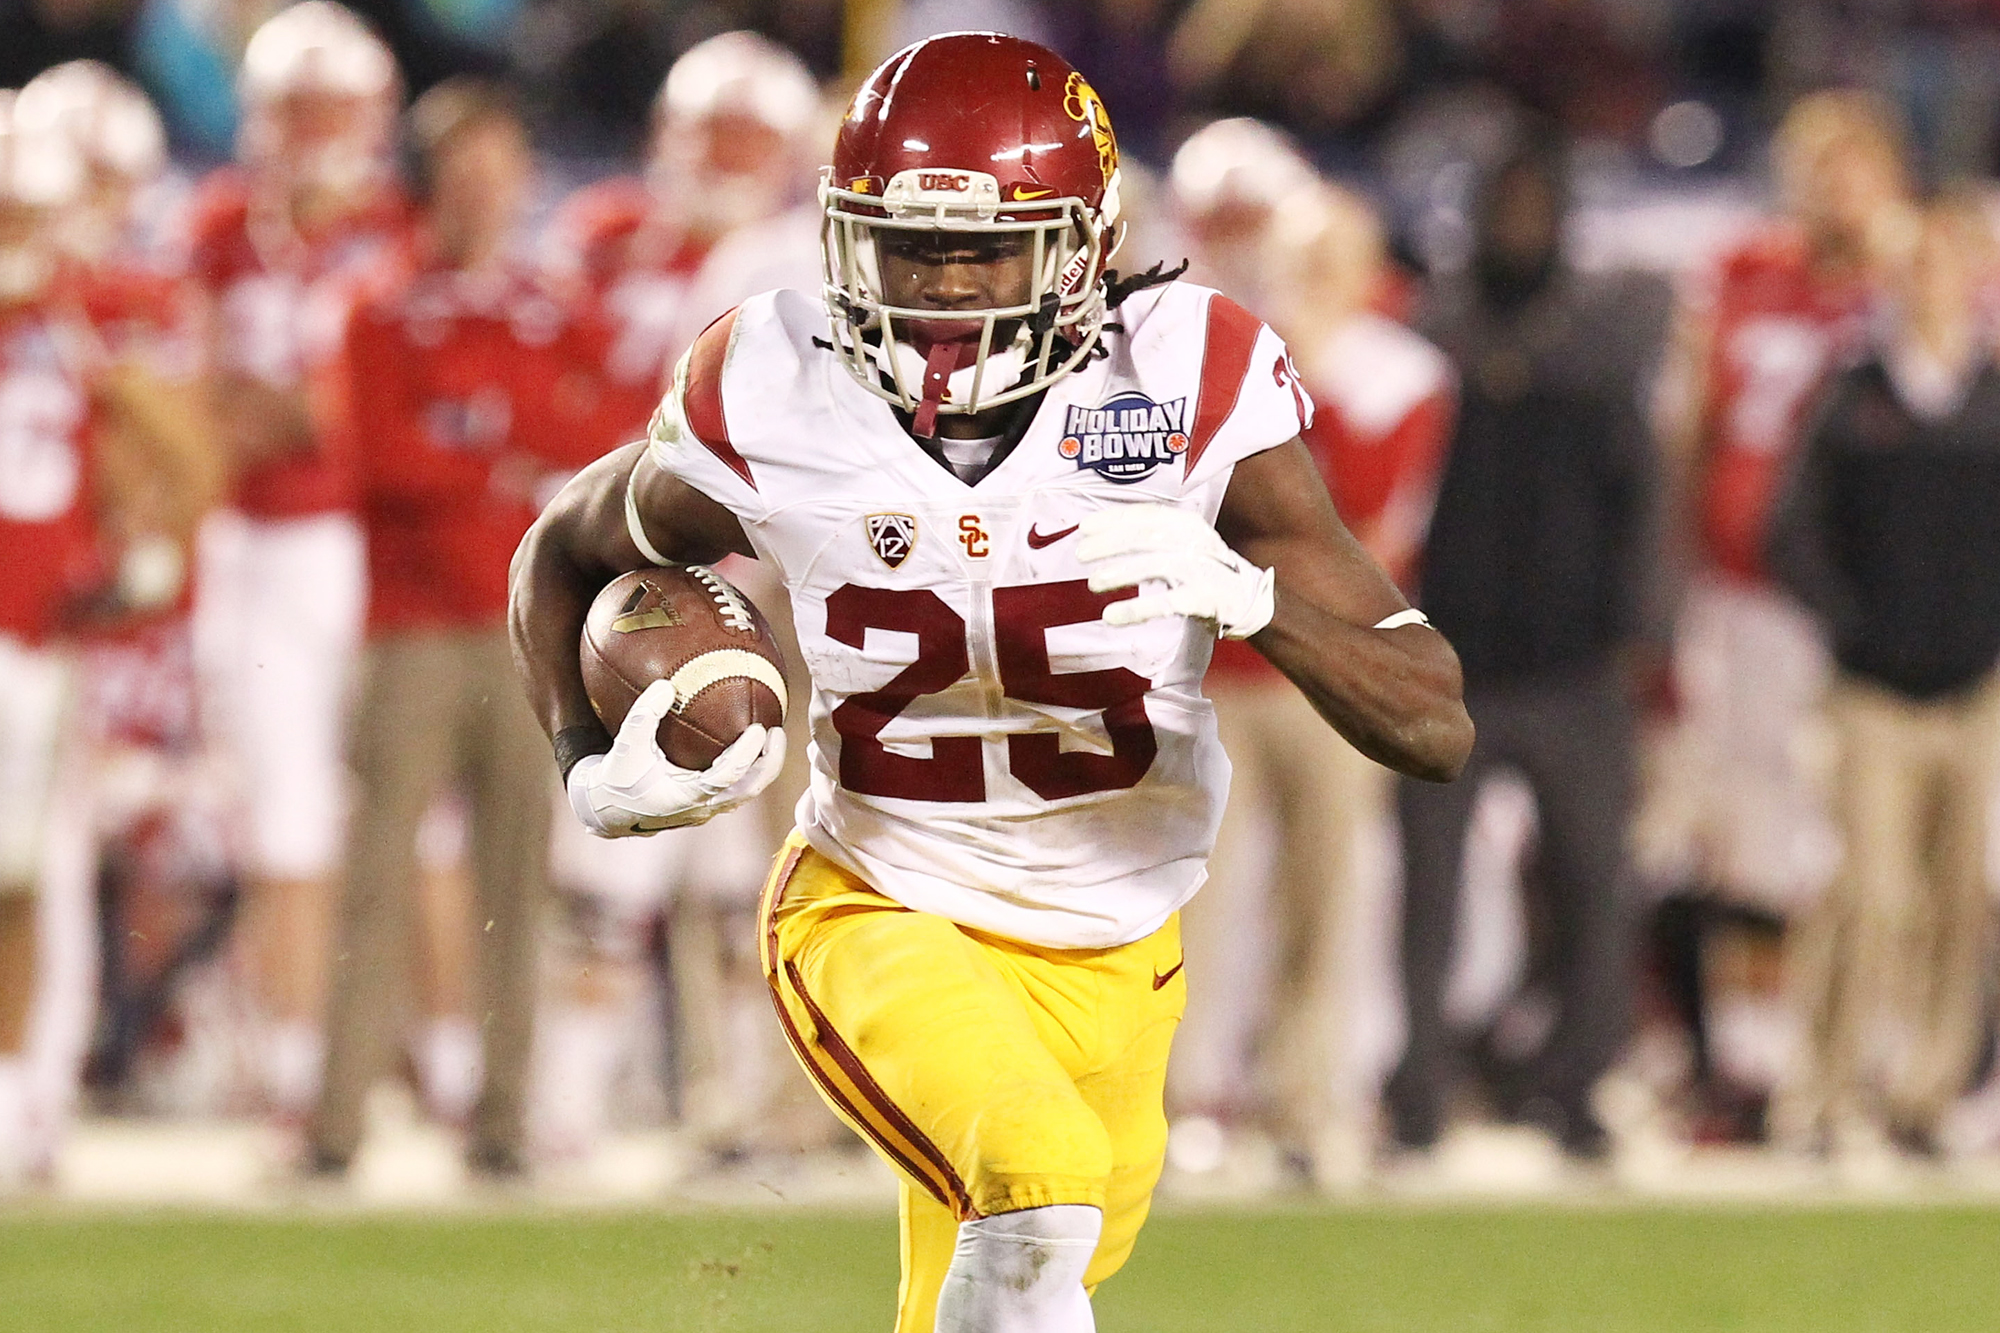 Ronald Jones II #25 of the USC Trojans carries the ball against the Wisconsin Badgers during the National University Holiday Bowl at Qualcomm Stadium on December 30, 2015 in San Diego, California.